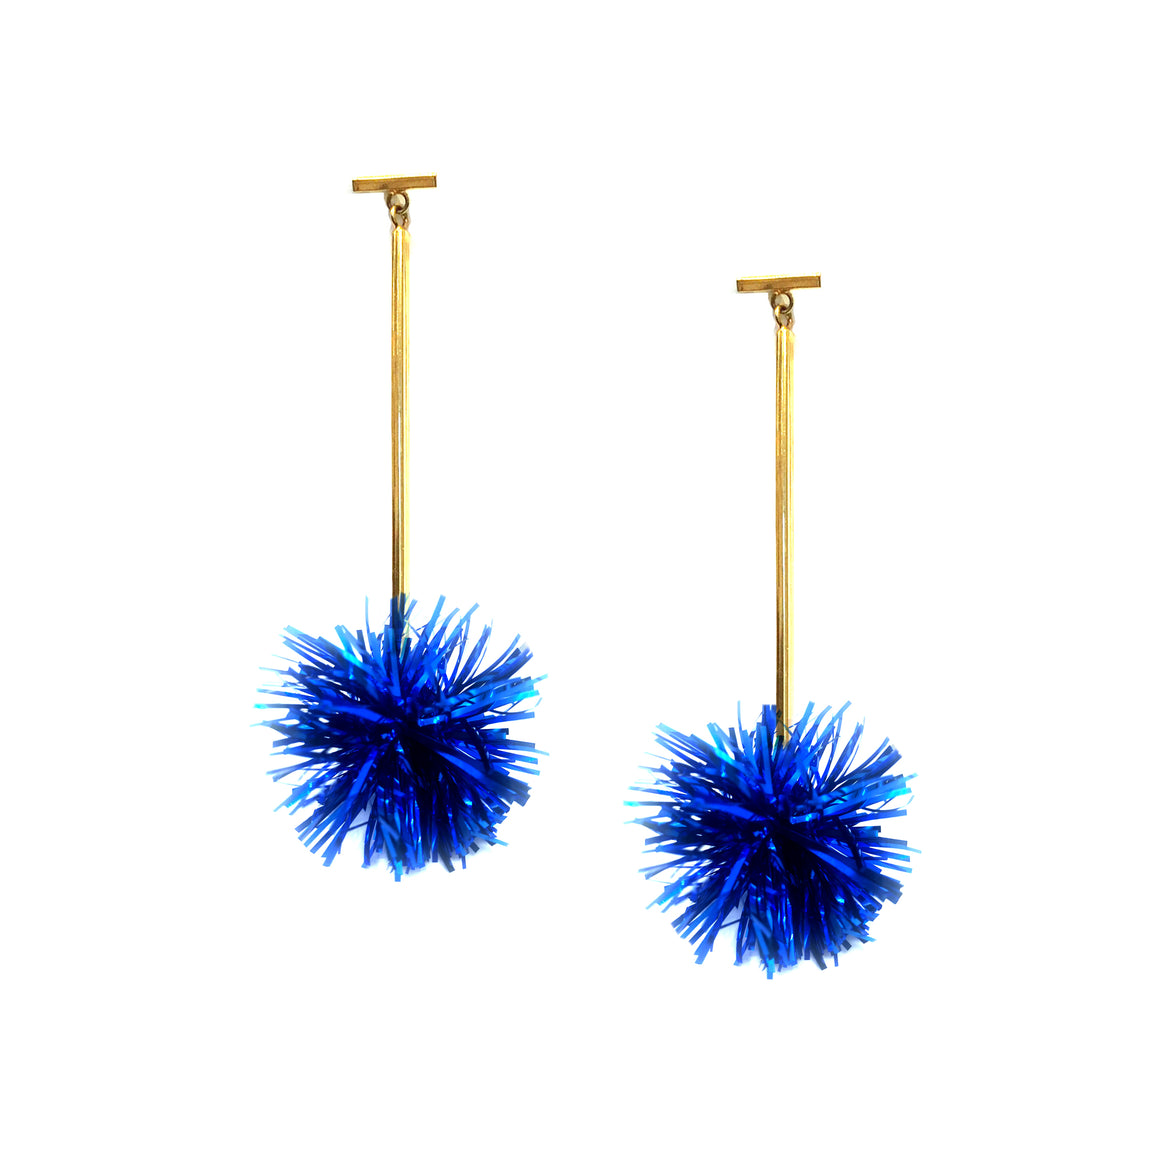 "1"" Cobalt Lurex Pom Pom T Bar Earrings, Earrings, Tuleste, Tuleste"